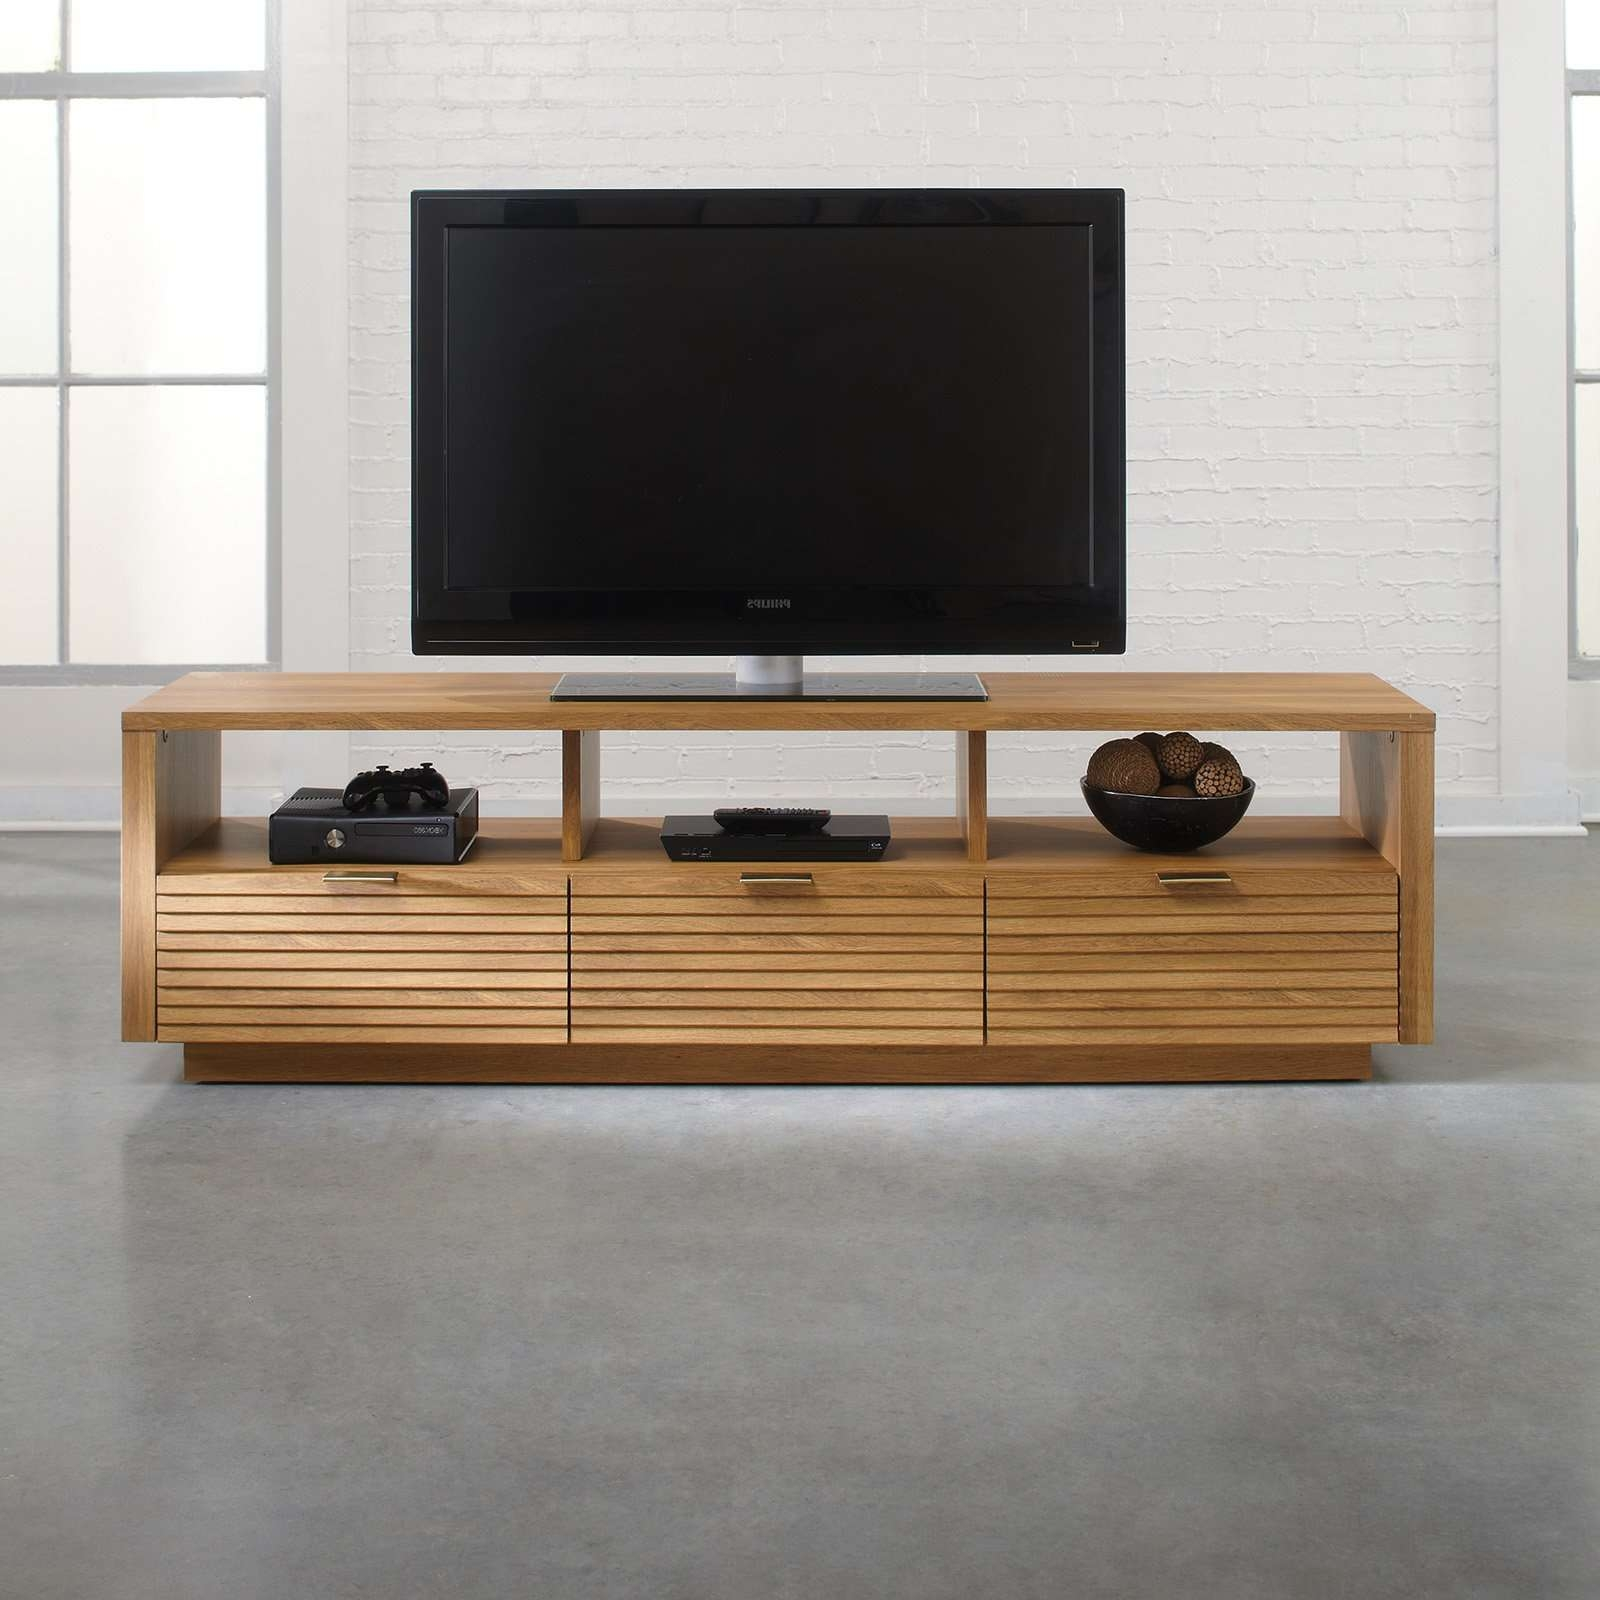 Belham Living Carter Mid Century Modern Tv Stand | Hayneedle Within Modern Wooden Tv Stands (View 2 of 15)